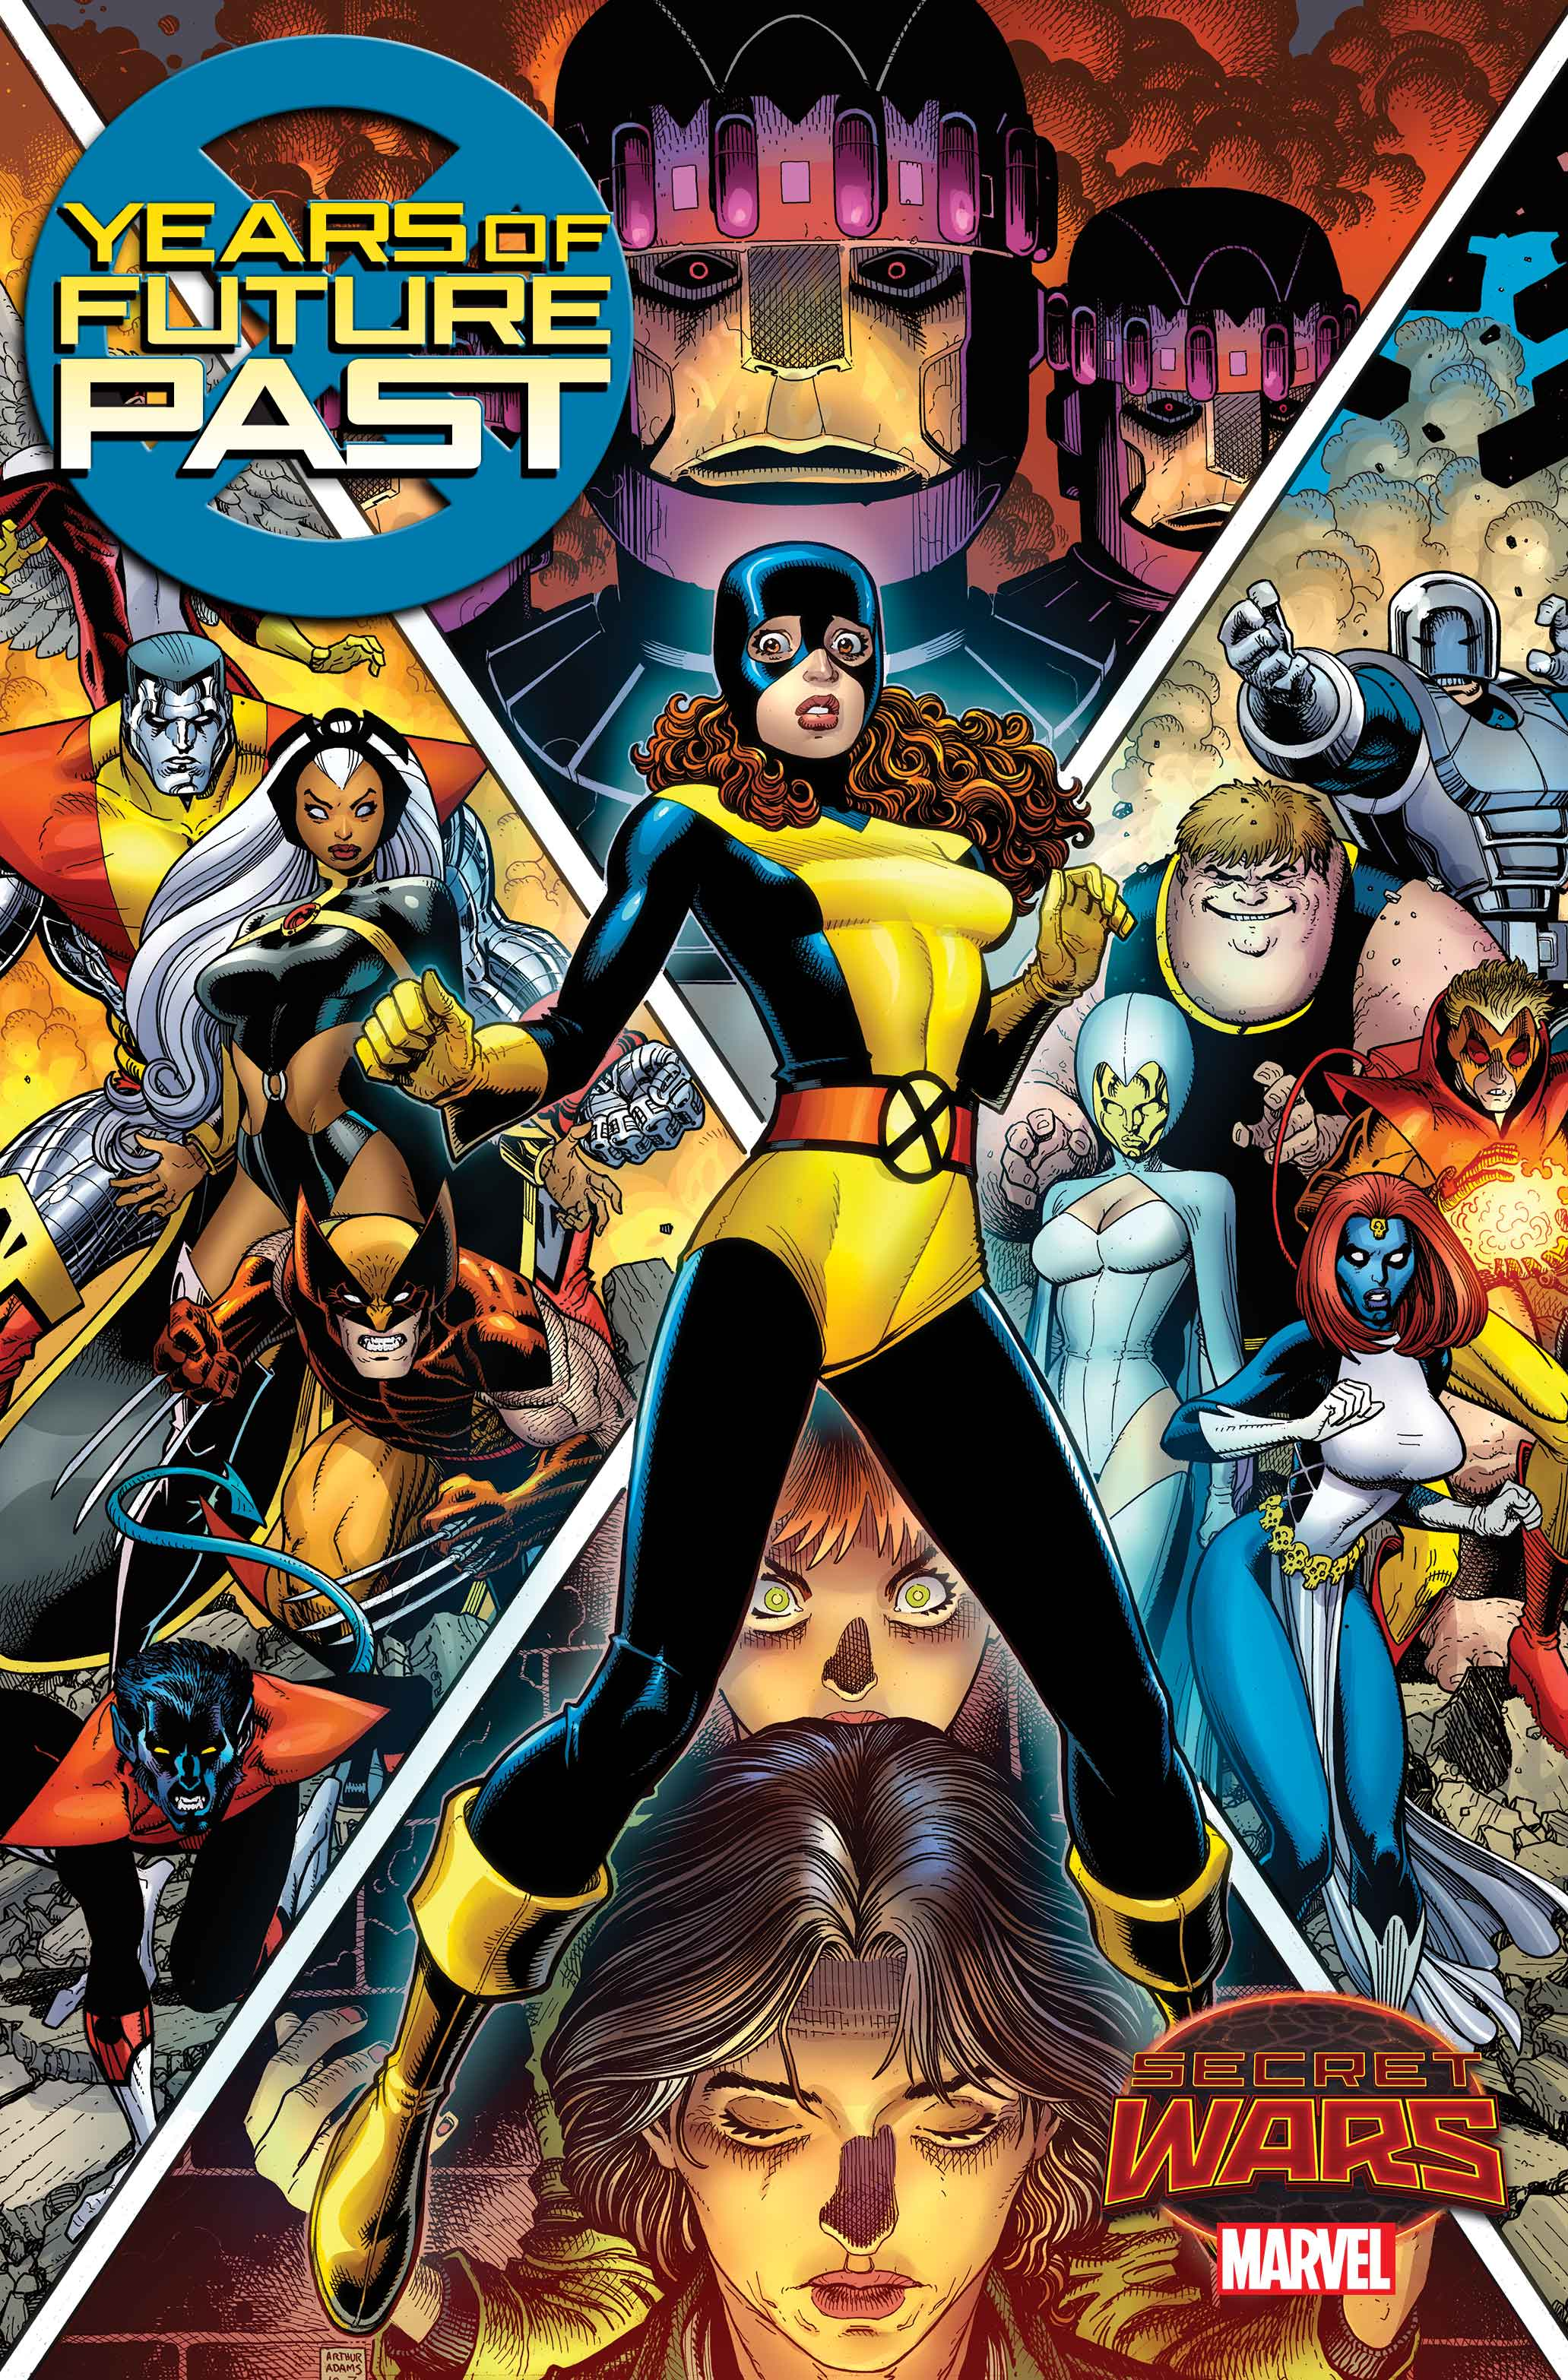 Years_of_Future_Past_1_Cover